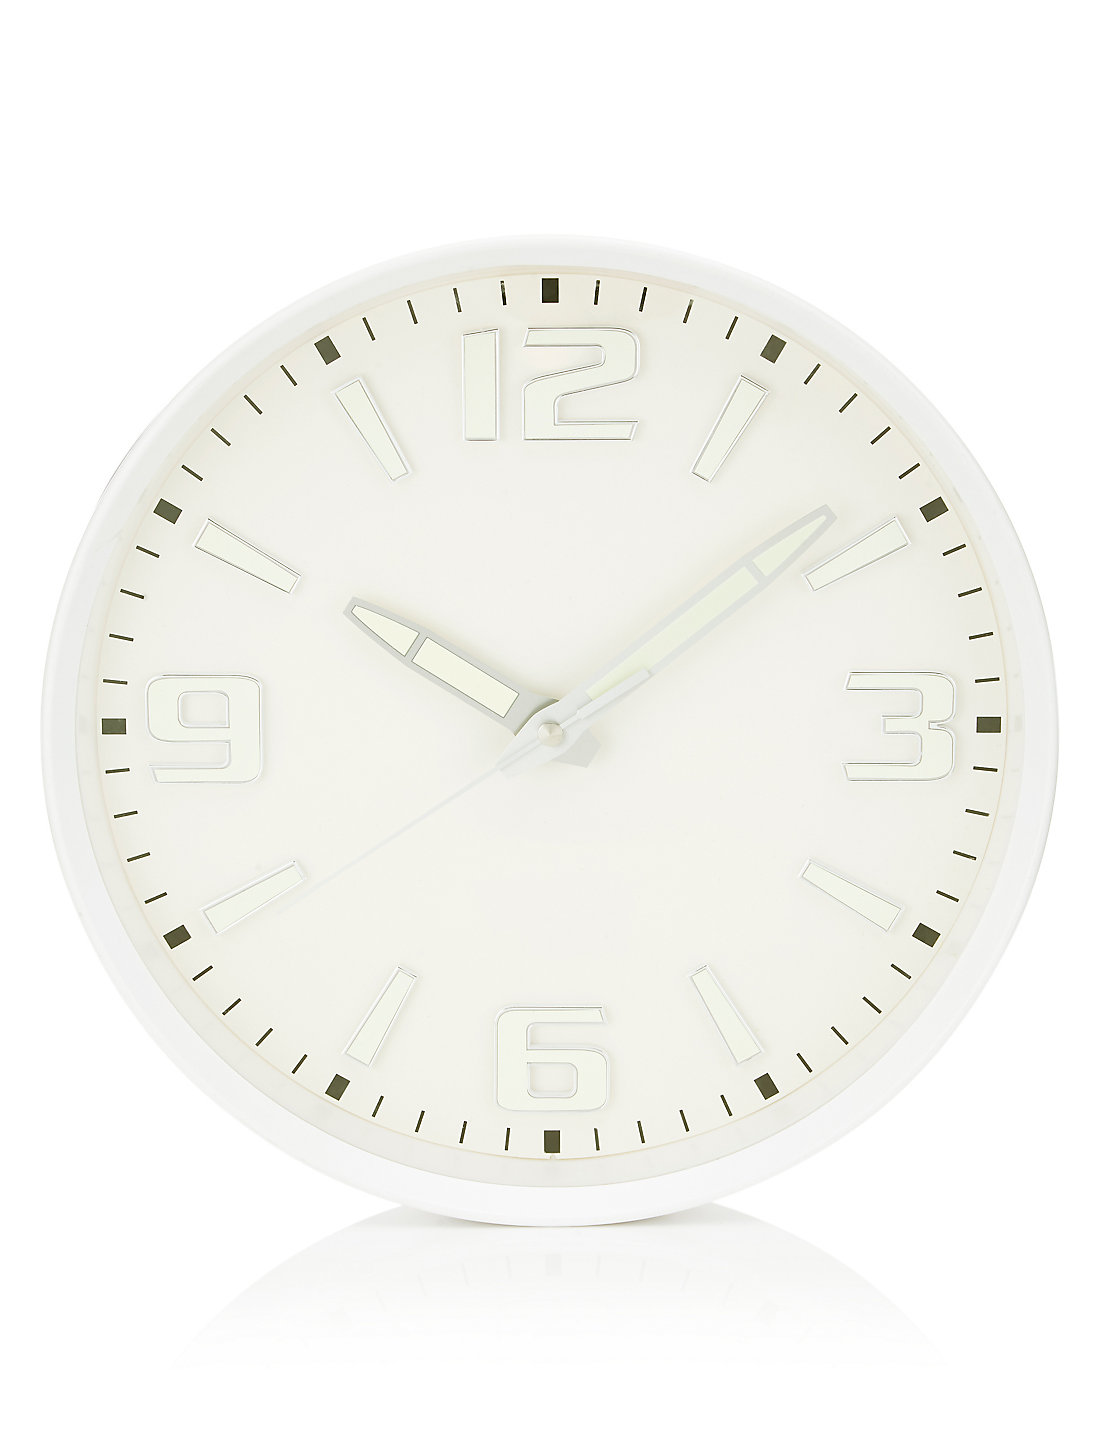 Glow in the dark wall clock ms glow in the dark wall clock amipublicfo Images